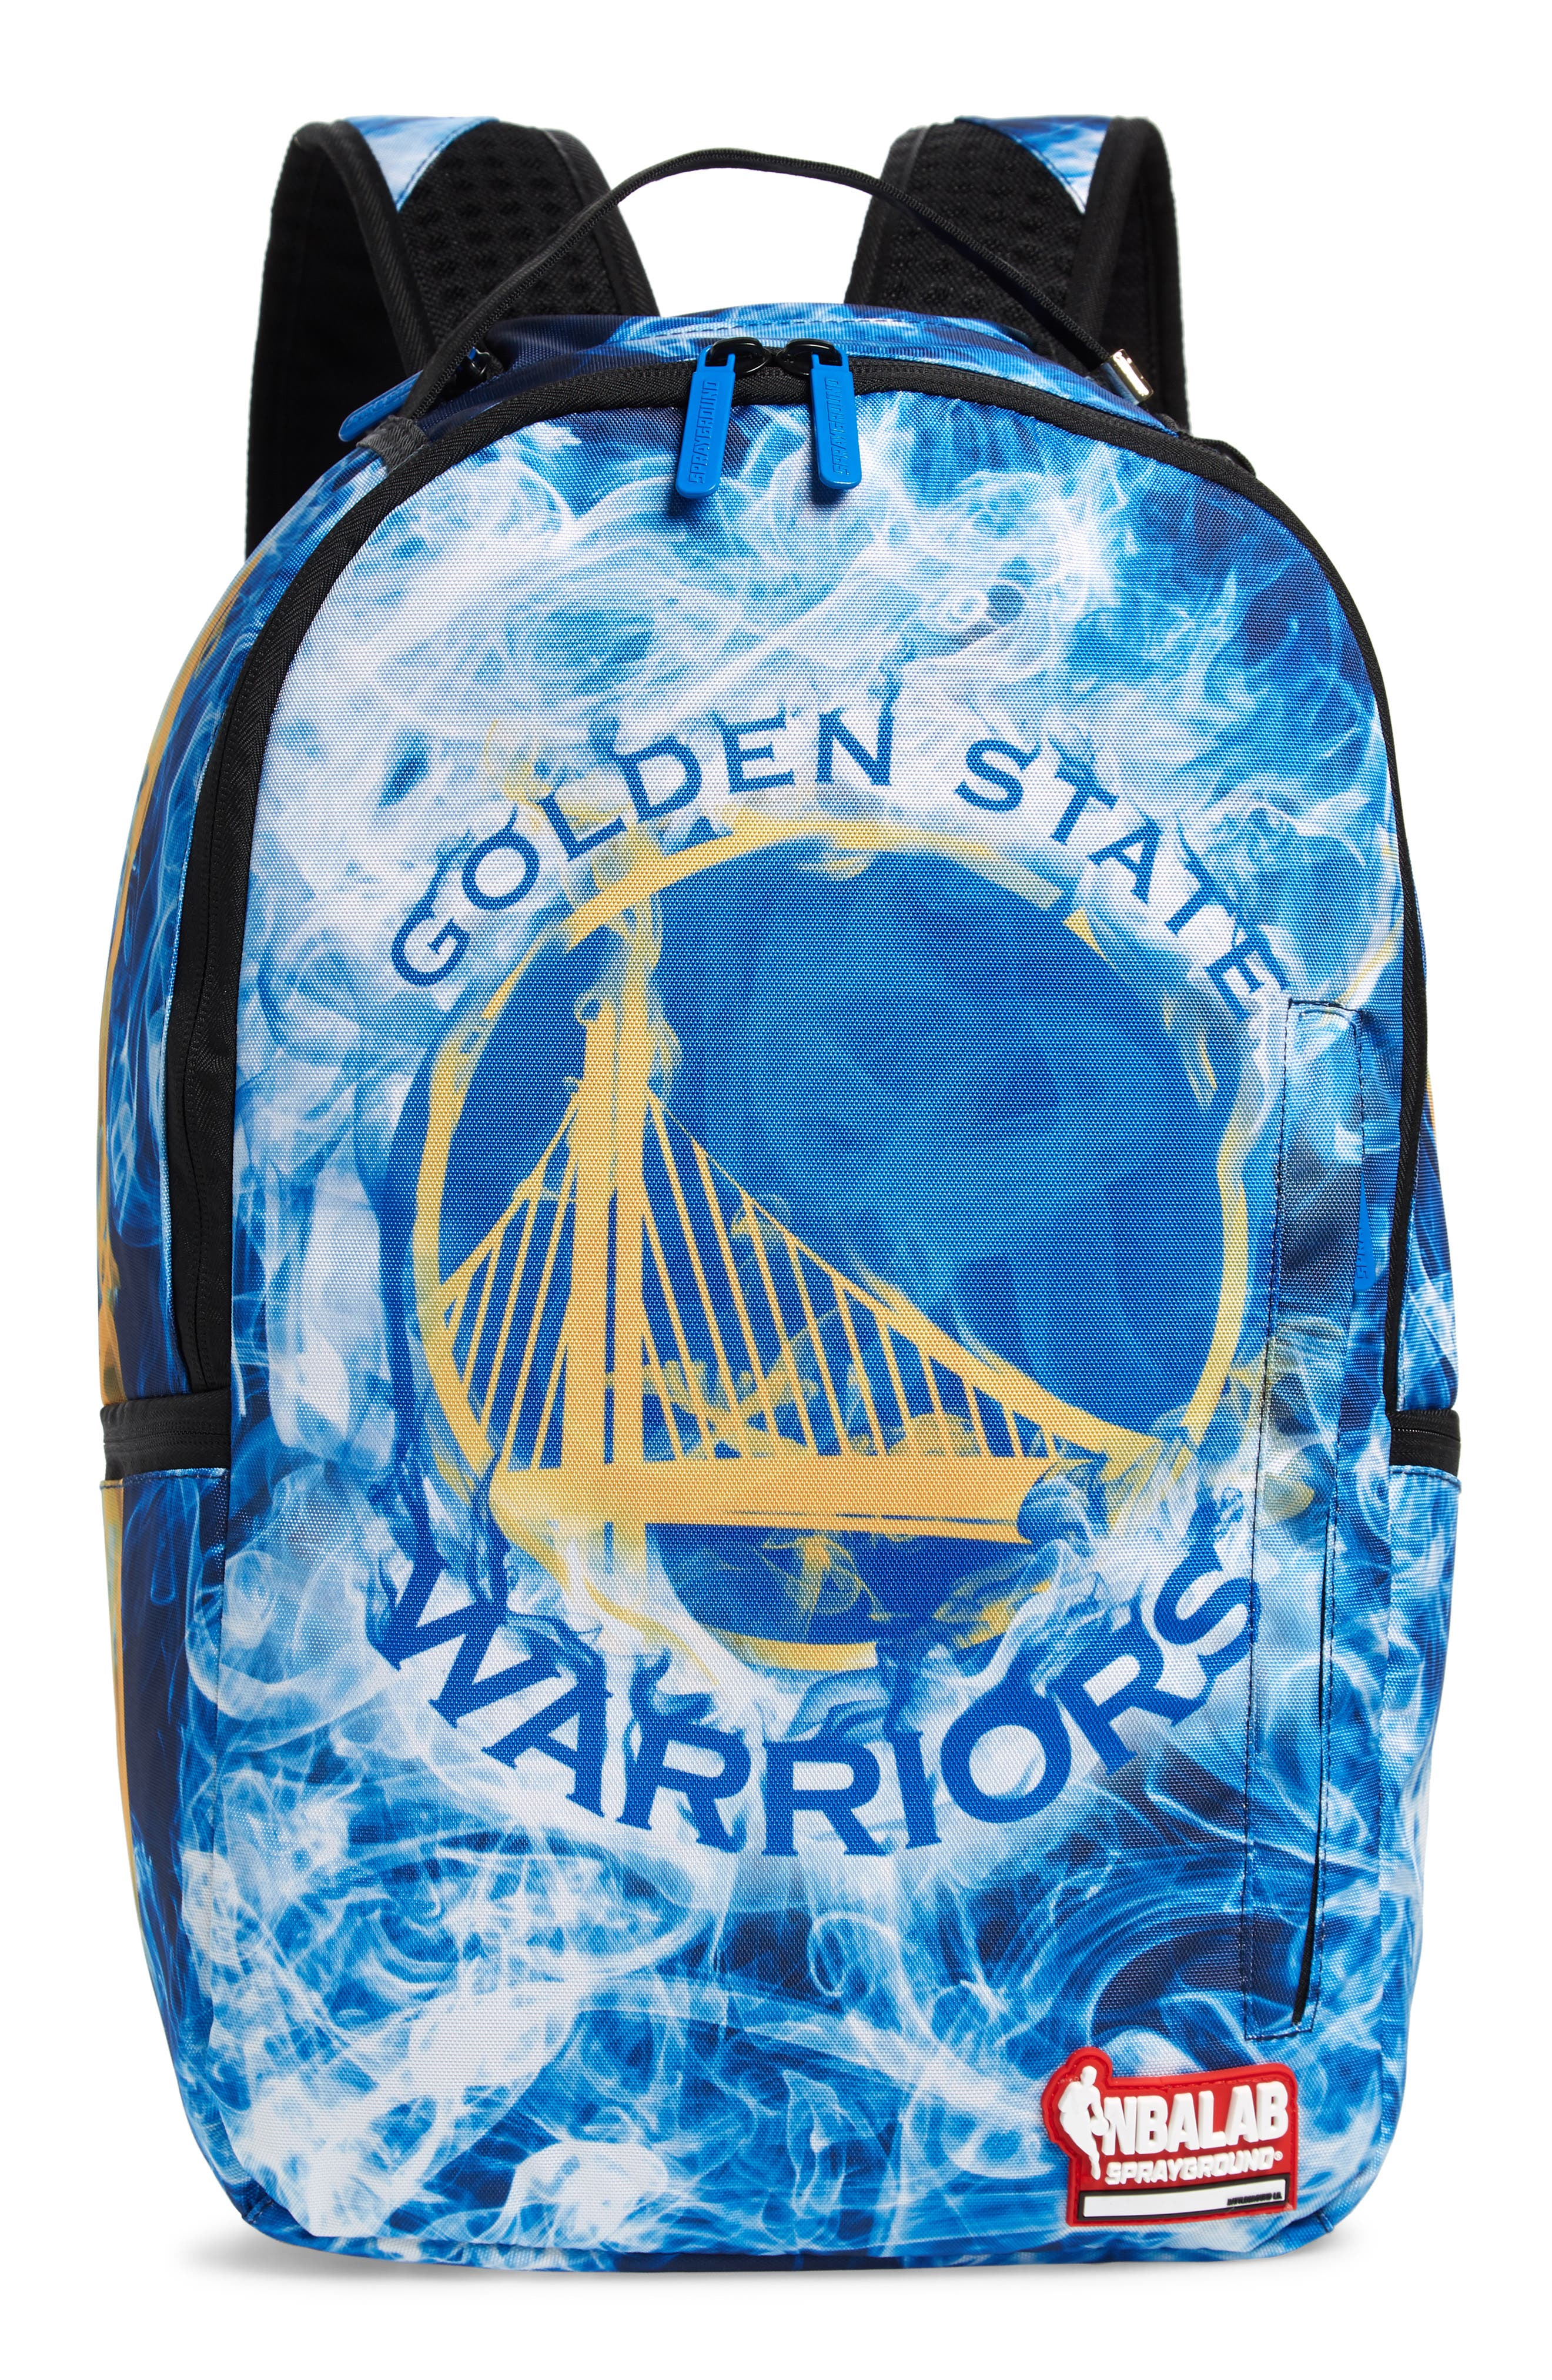 Golden State Smoke Backpack,                             Main thumbnail 1, color,                             BLUE